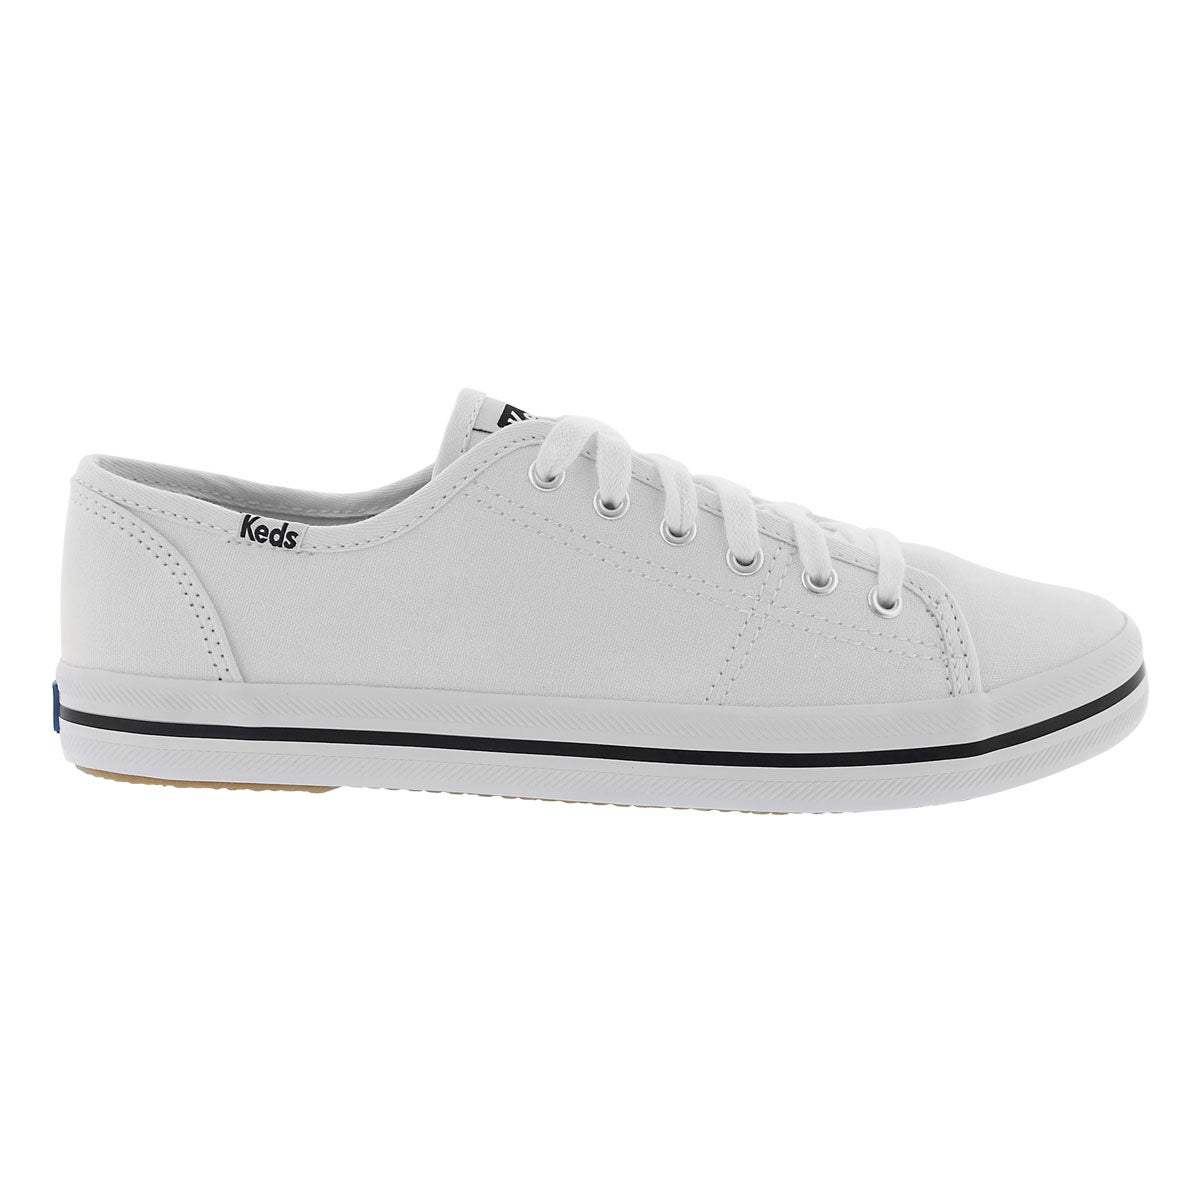 Womens Canvas Sneakers Sale: Save Up to 50% Off! Shop newuz.tk's huge selection of Womens Canvas Sneakers - Over styles available. FREE Shipping .